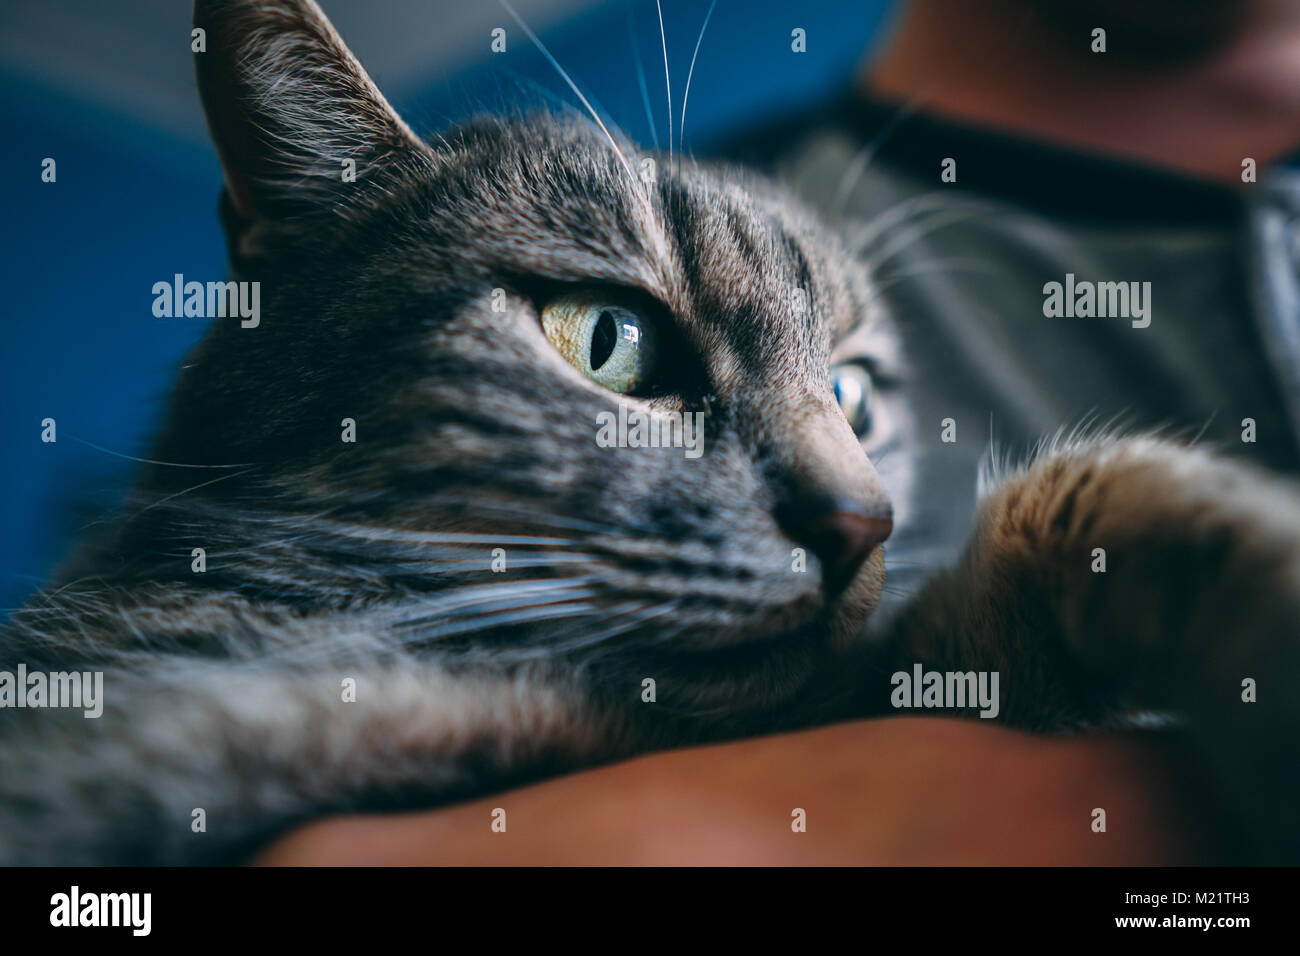 Photo of a grey cat - Stock Image